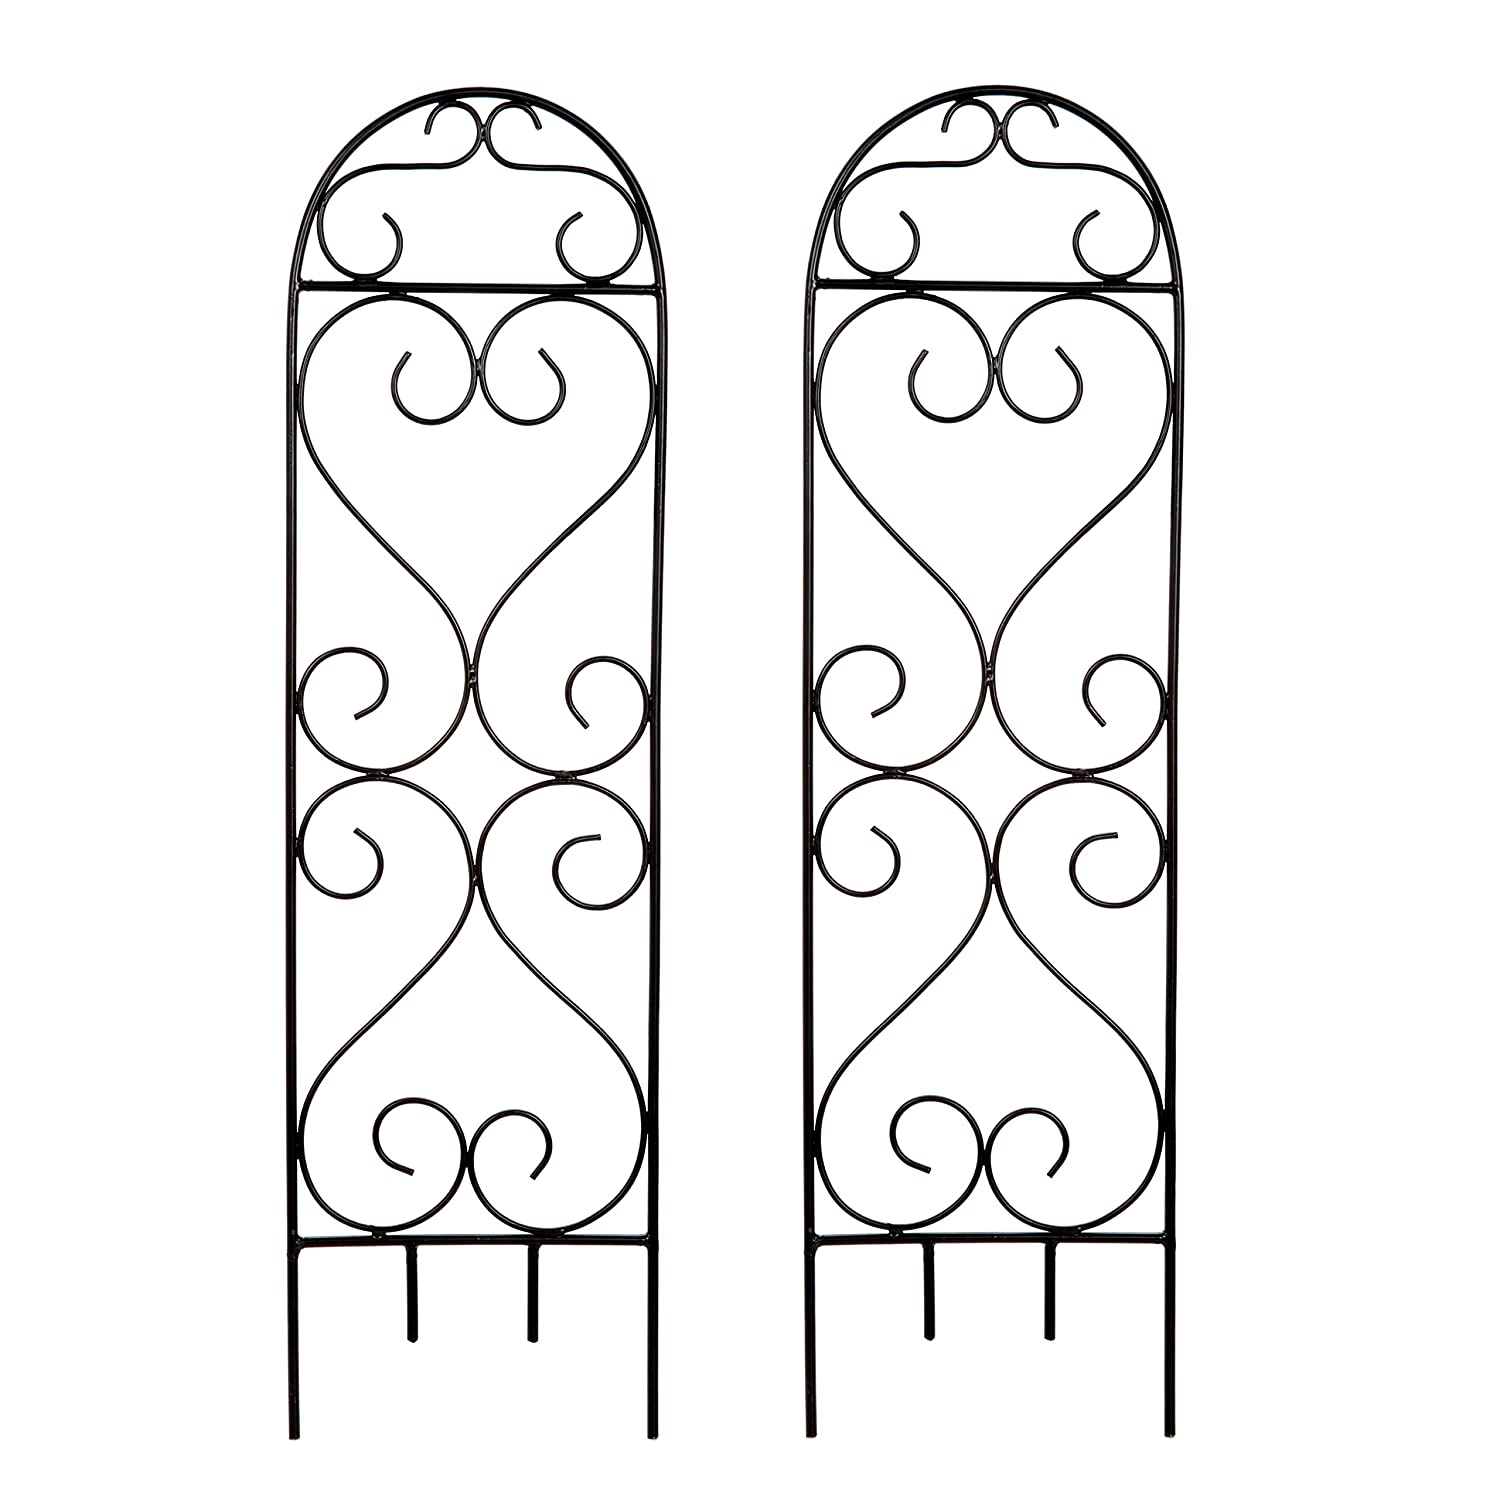 "Hosley's Set of 2 Scroll Planter Trellis, 27"" High. Ideal Gift for Wedding or Party and Use Next to Structures (Home or Office) or in Planters for Growing Floral, Plants, Vines and Vegetables O4"